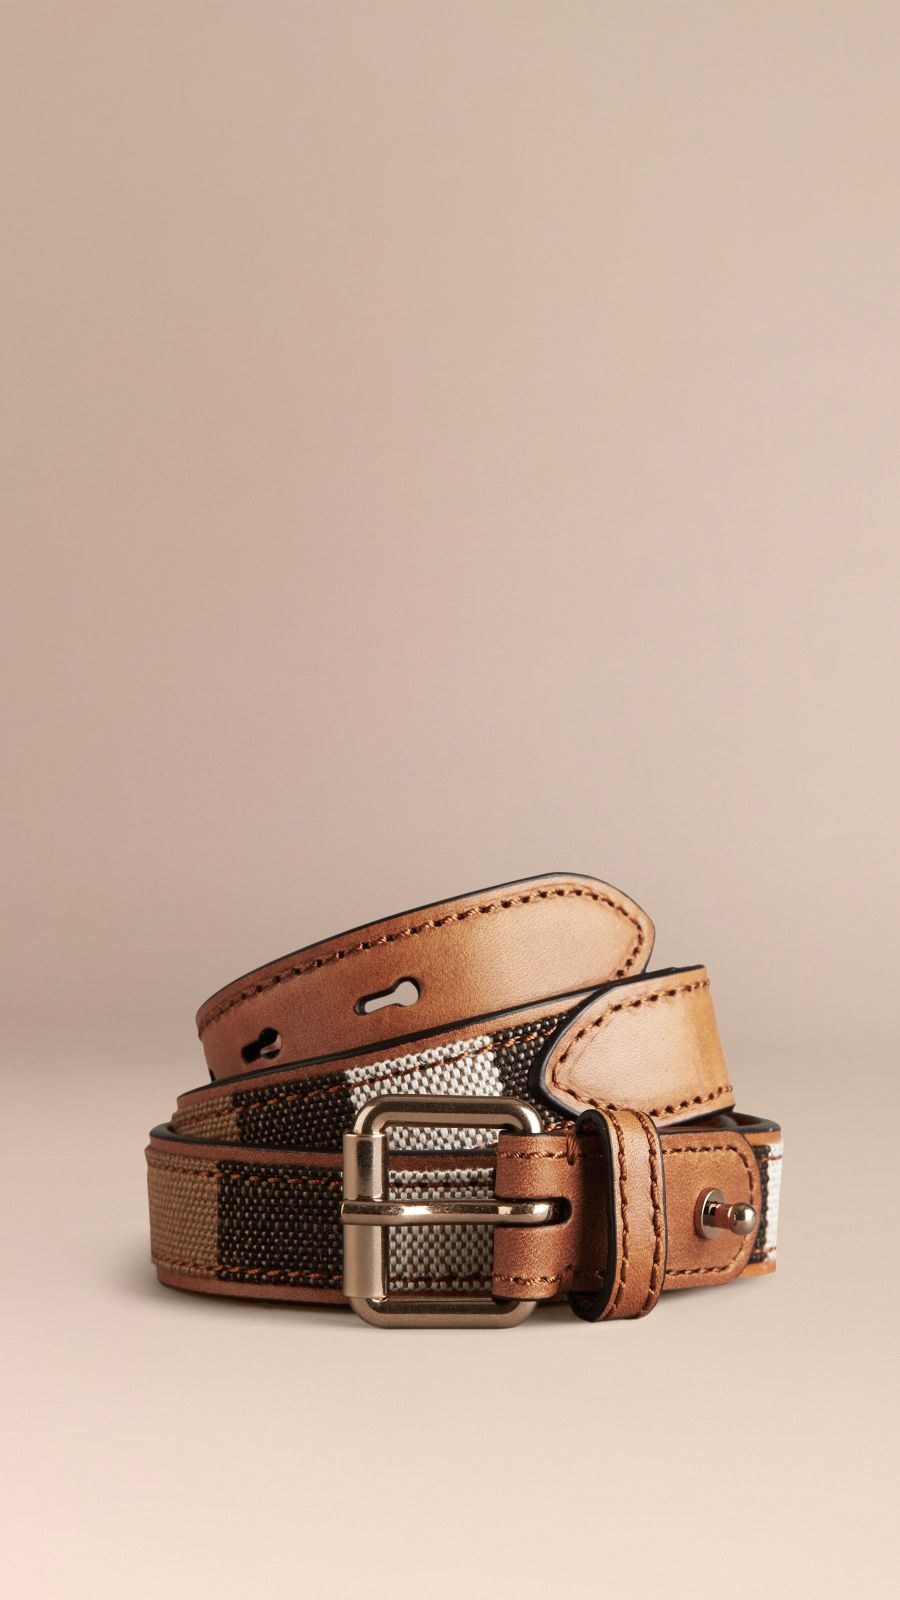 Tan Canvas Check and Leather Belt - Image 1